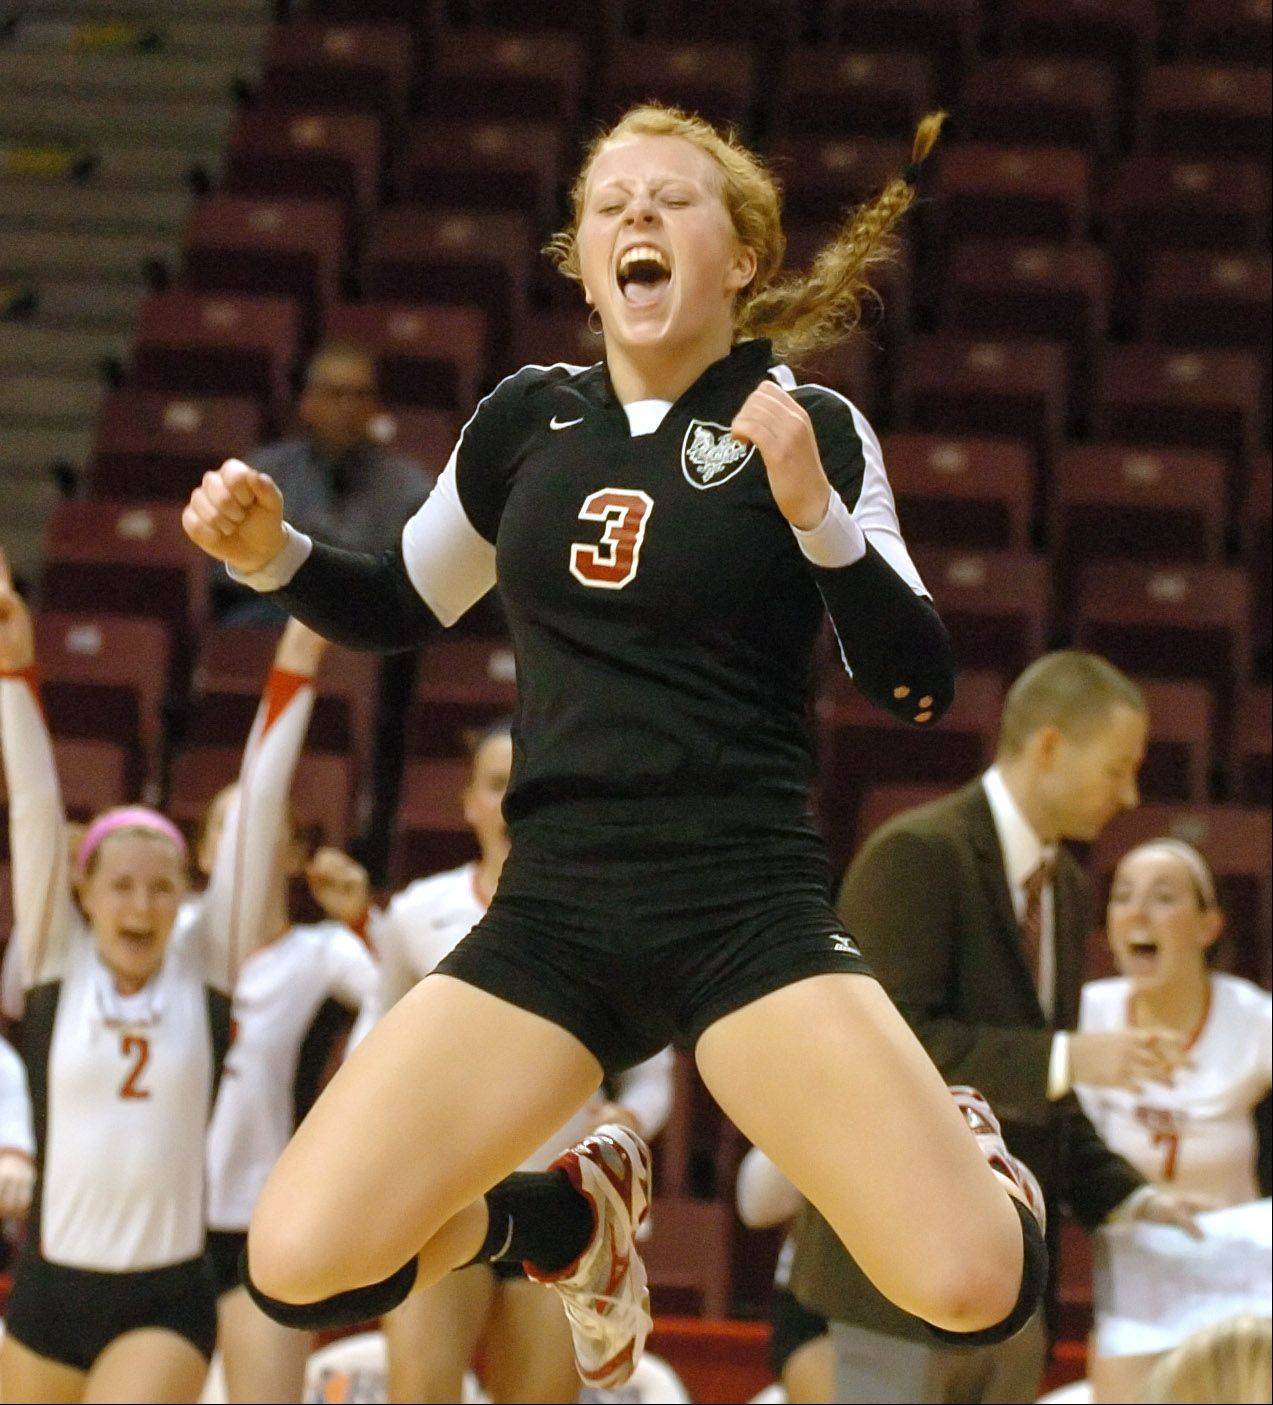 Sheila Doyle of Benet celebrates their win during the class 4A girls volleyball semifinal, Benet vs. Libertyville at Redbird Arena, on Illinois State campus Friday.